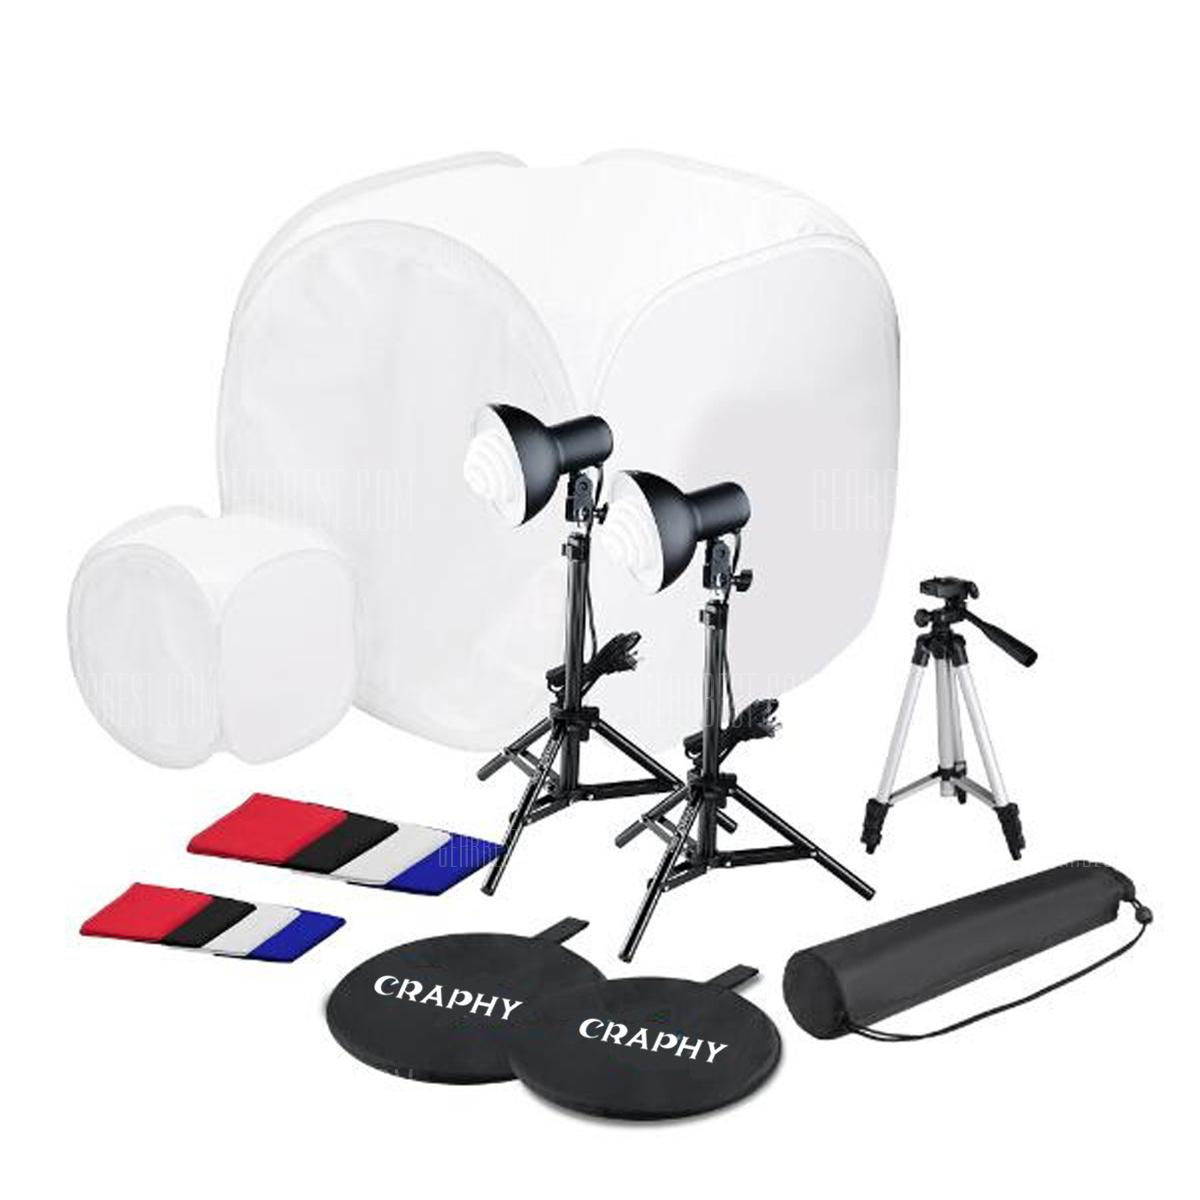 Craphy SHLP - 045 SL - 001 Photo Studio LED Flash Lighting Kit - BLACK